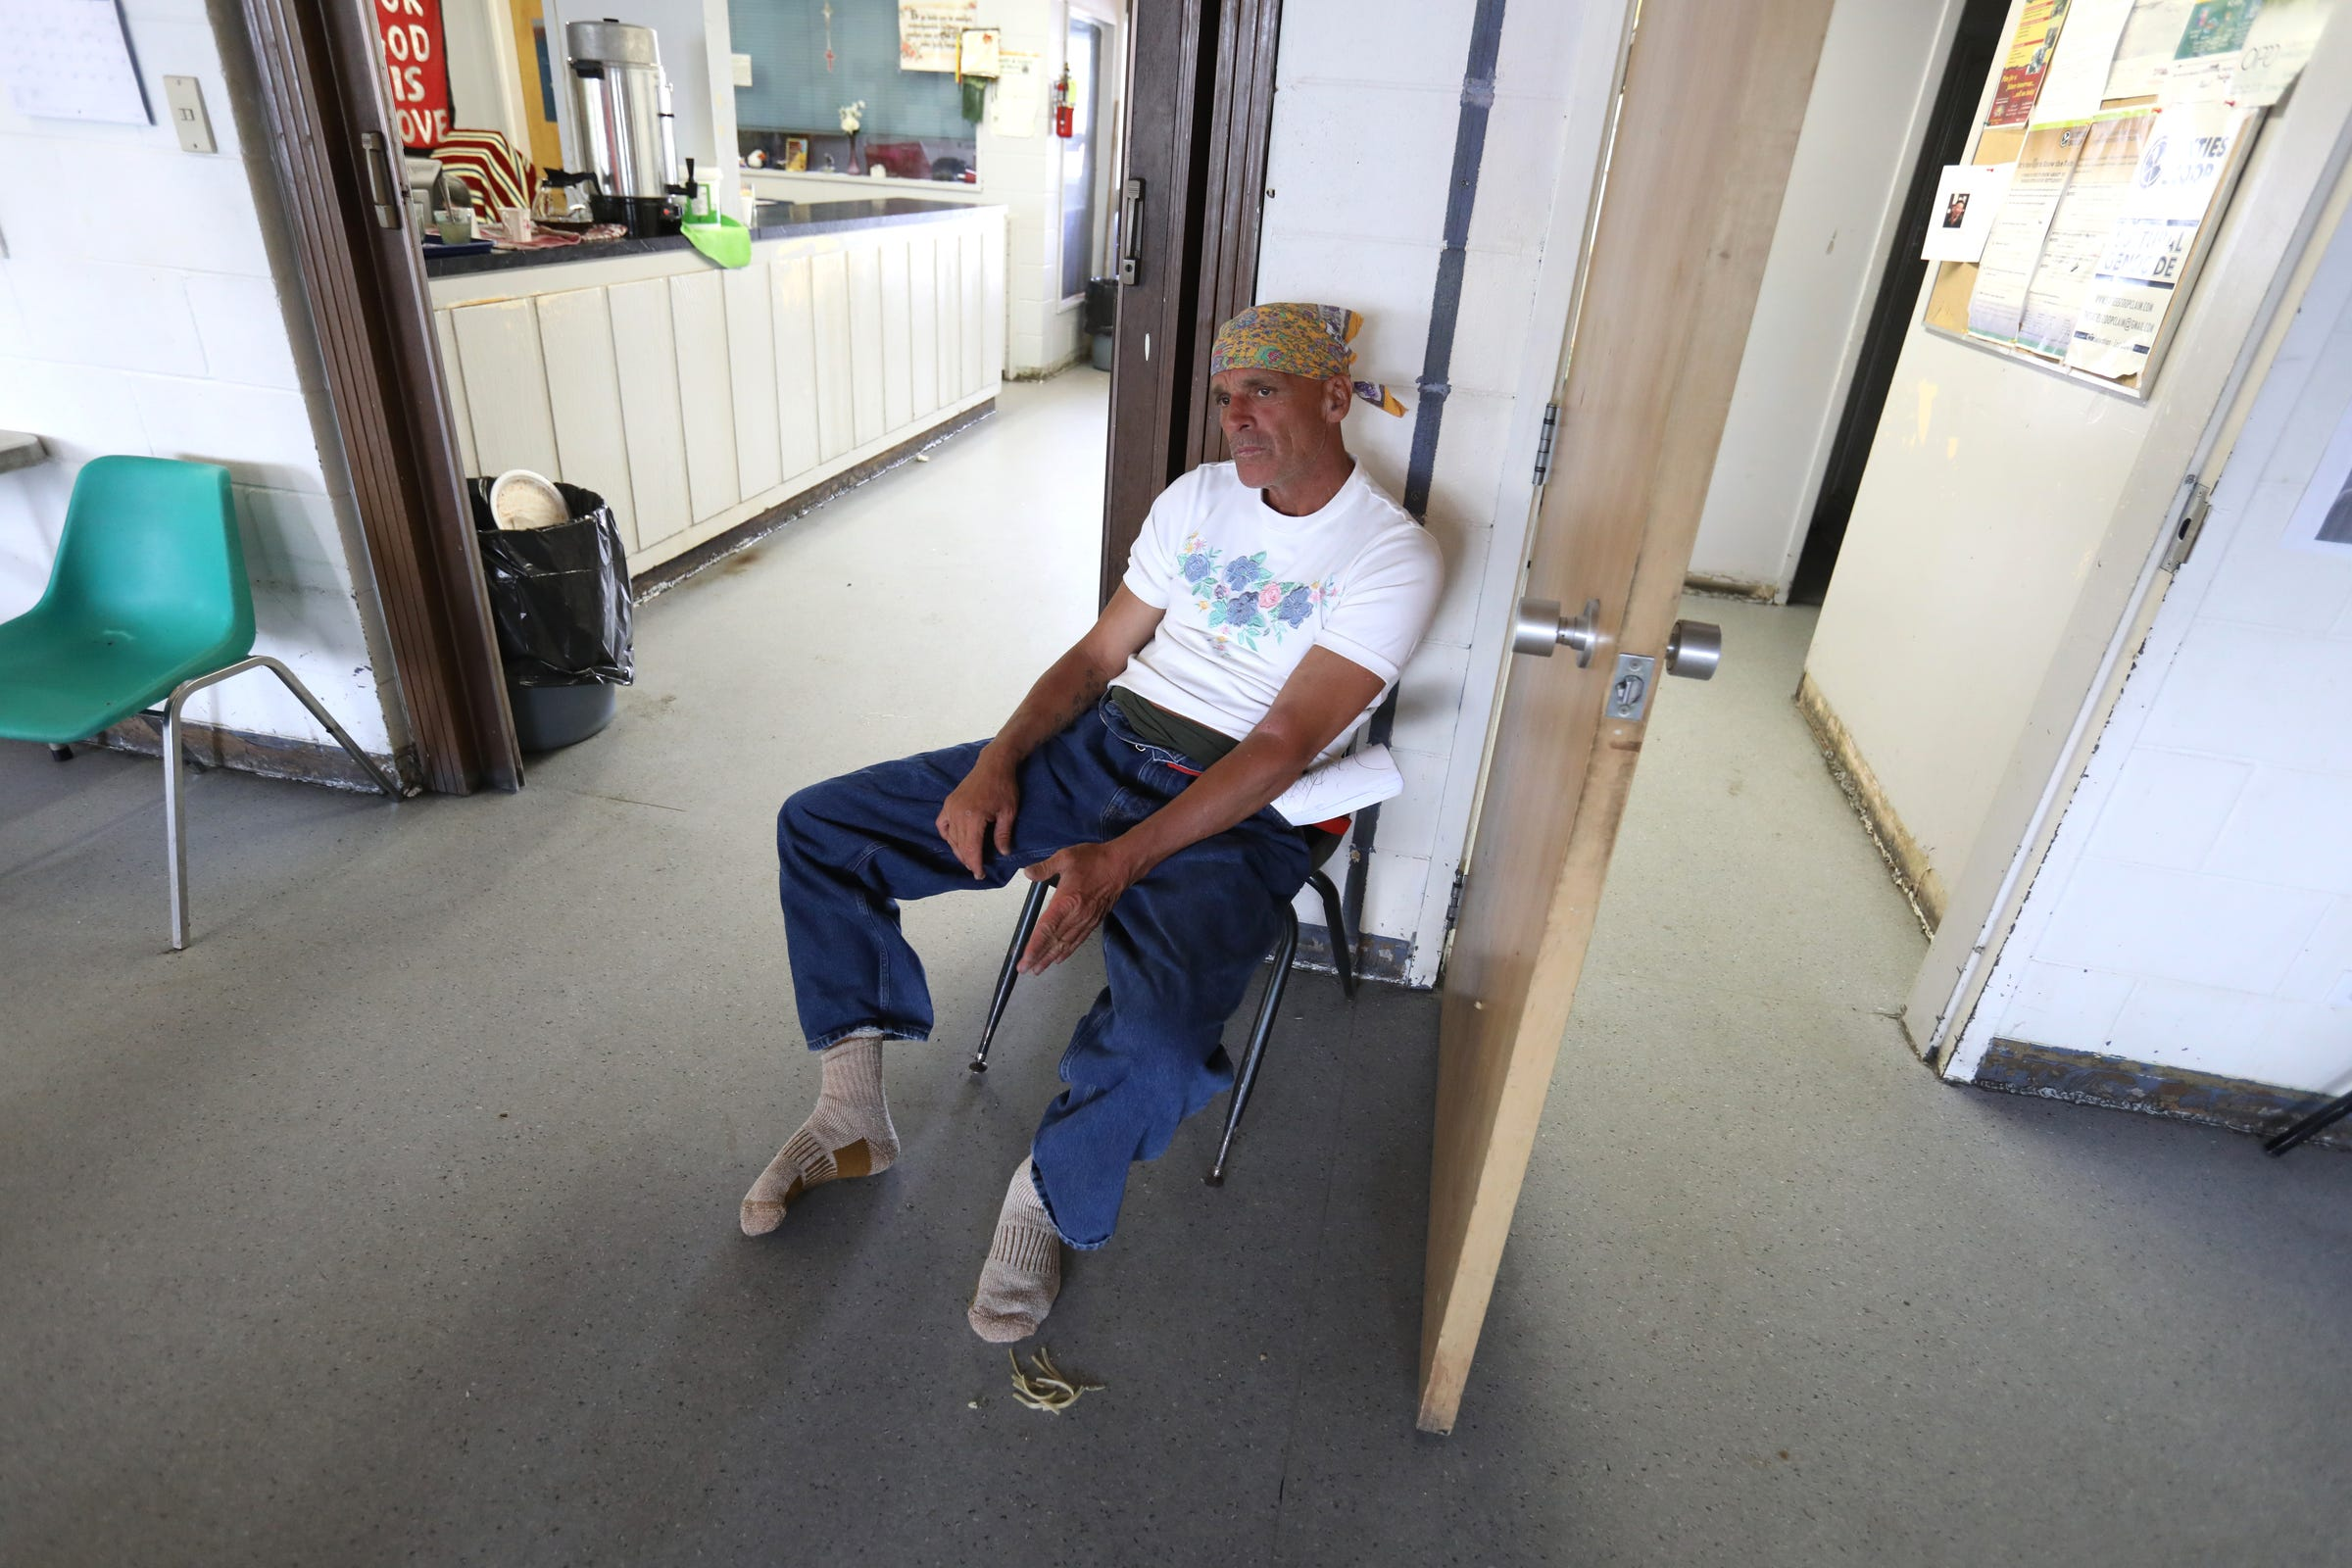 With a new shirt, jeans and socks but no shoes since they are waterlogged from the rain, Joe Murphy relaxes at the Fellowship Centre in Kenora, Ontario, Canada on Wednesday, July 10, 2019 Living on the streets Murphy relies on the center often for food, coffee, clothing and showers.After living in a hotel in Kenora, Ontario, Canada set up by former NHL hockey players, former Detroit Red Wings player Joe Murphy is back on the streets of that city and homeless.